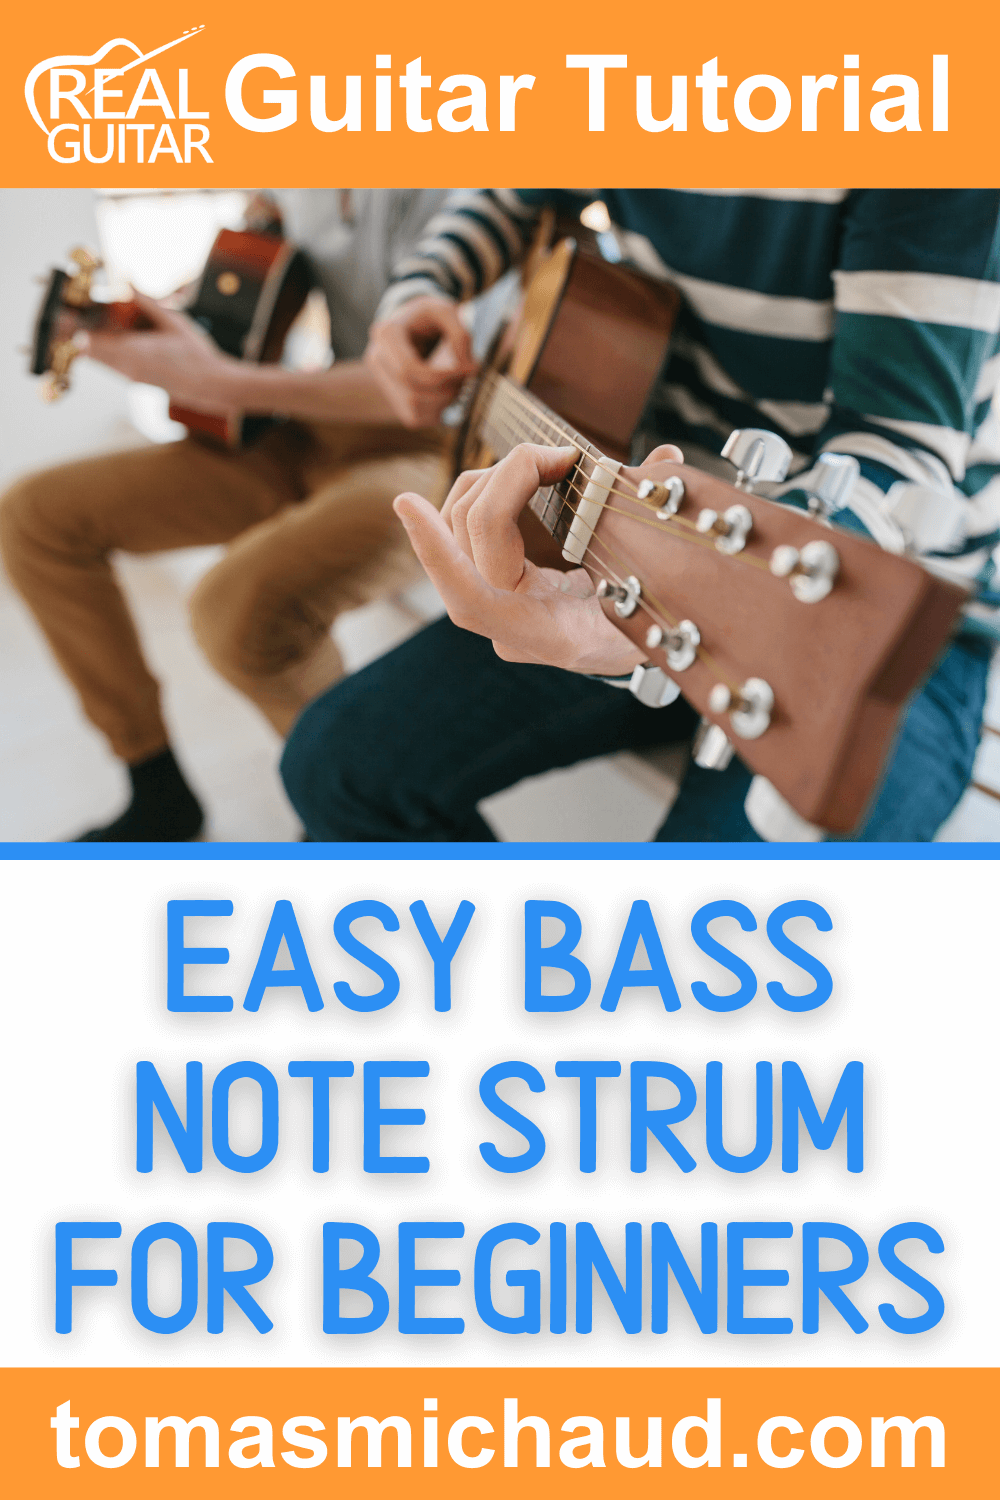 Easy Bass Note Strum For Beginners